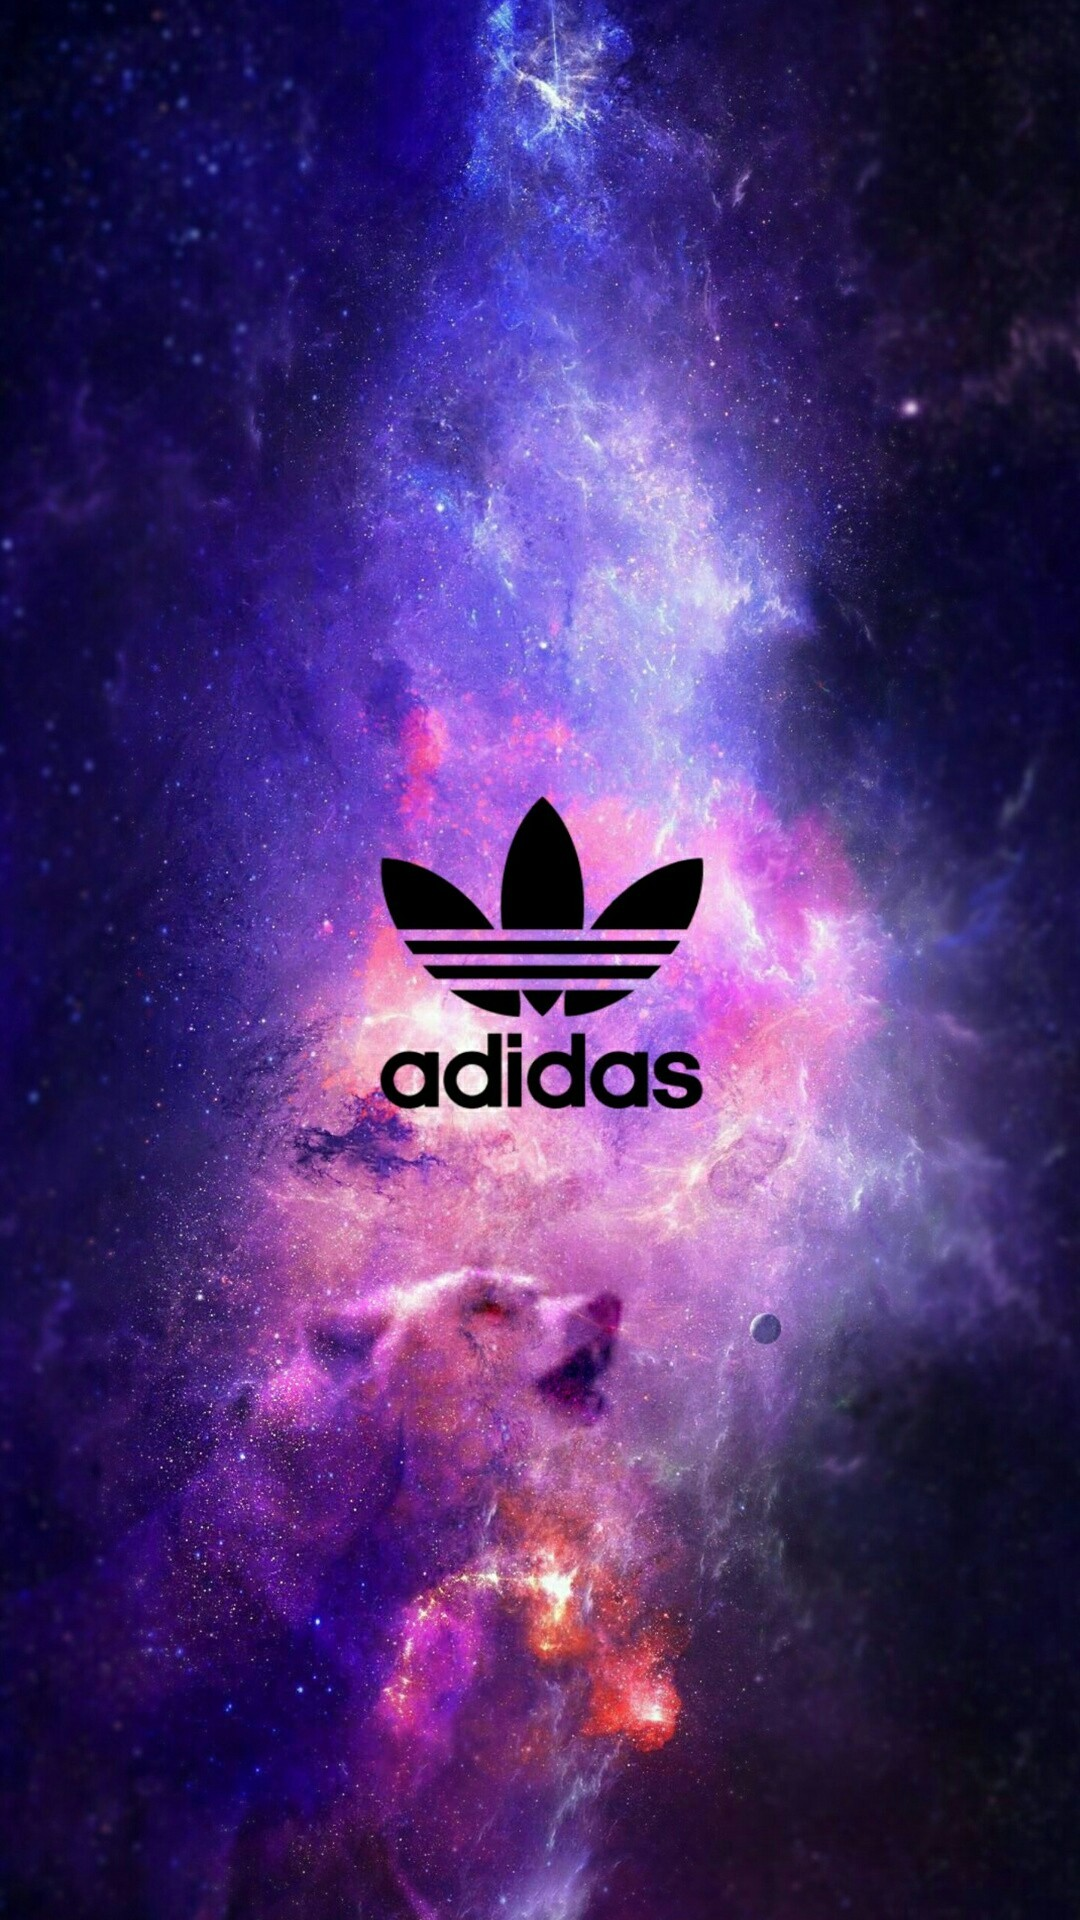 Adidas Shoes Picture Free Download